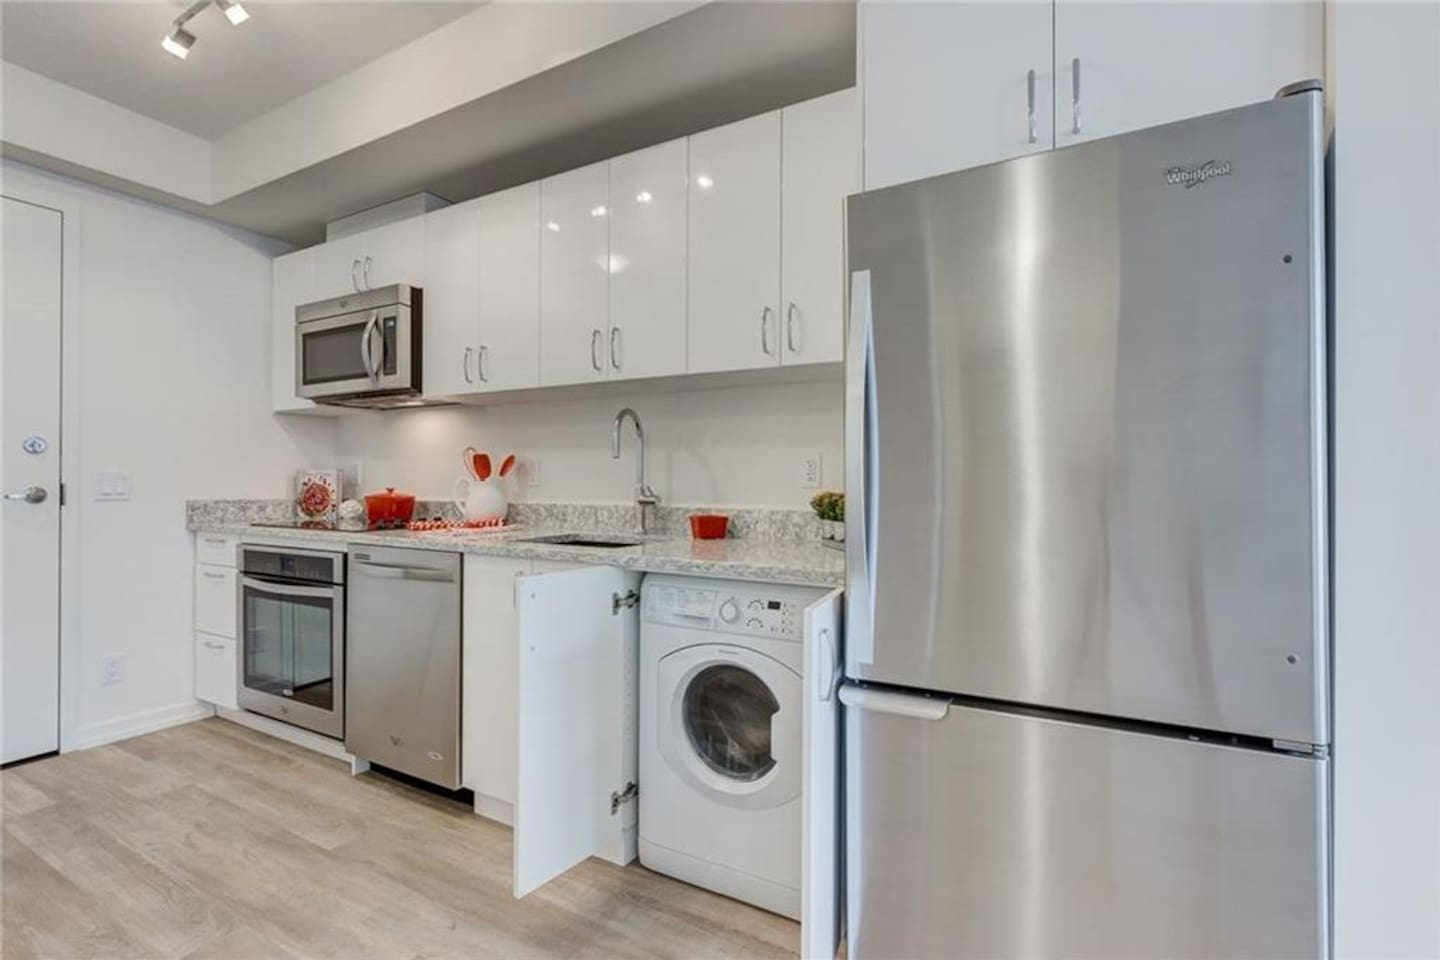 Beautiful kitchen with stainless steel and granite countertops